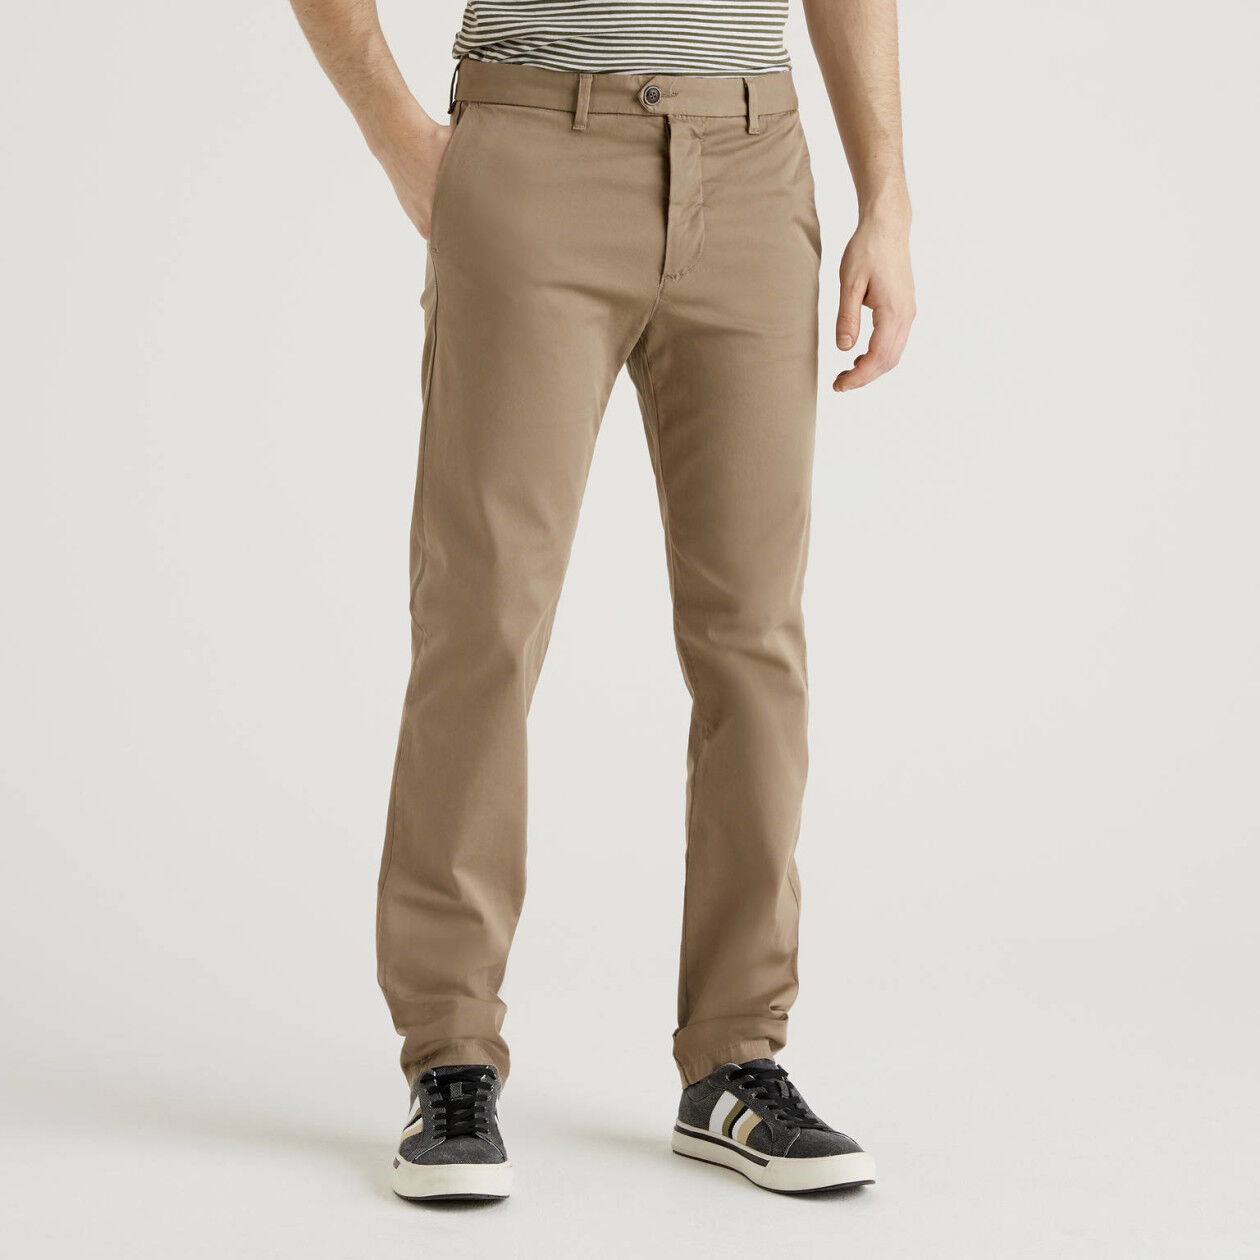 Dove gray slim fit stretch chinos